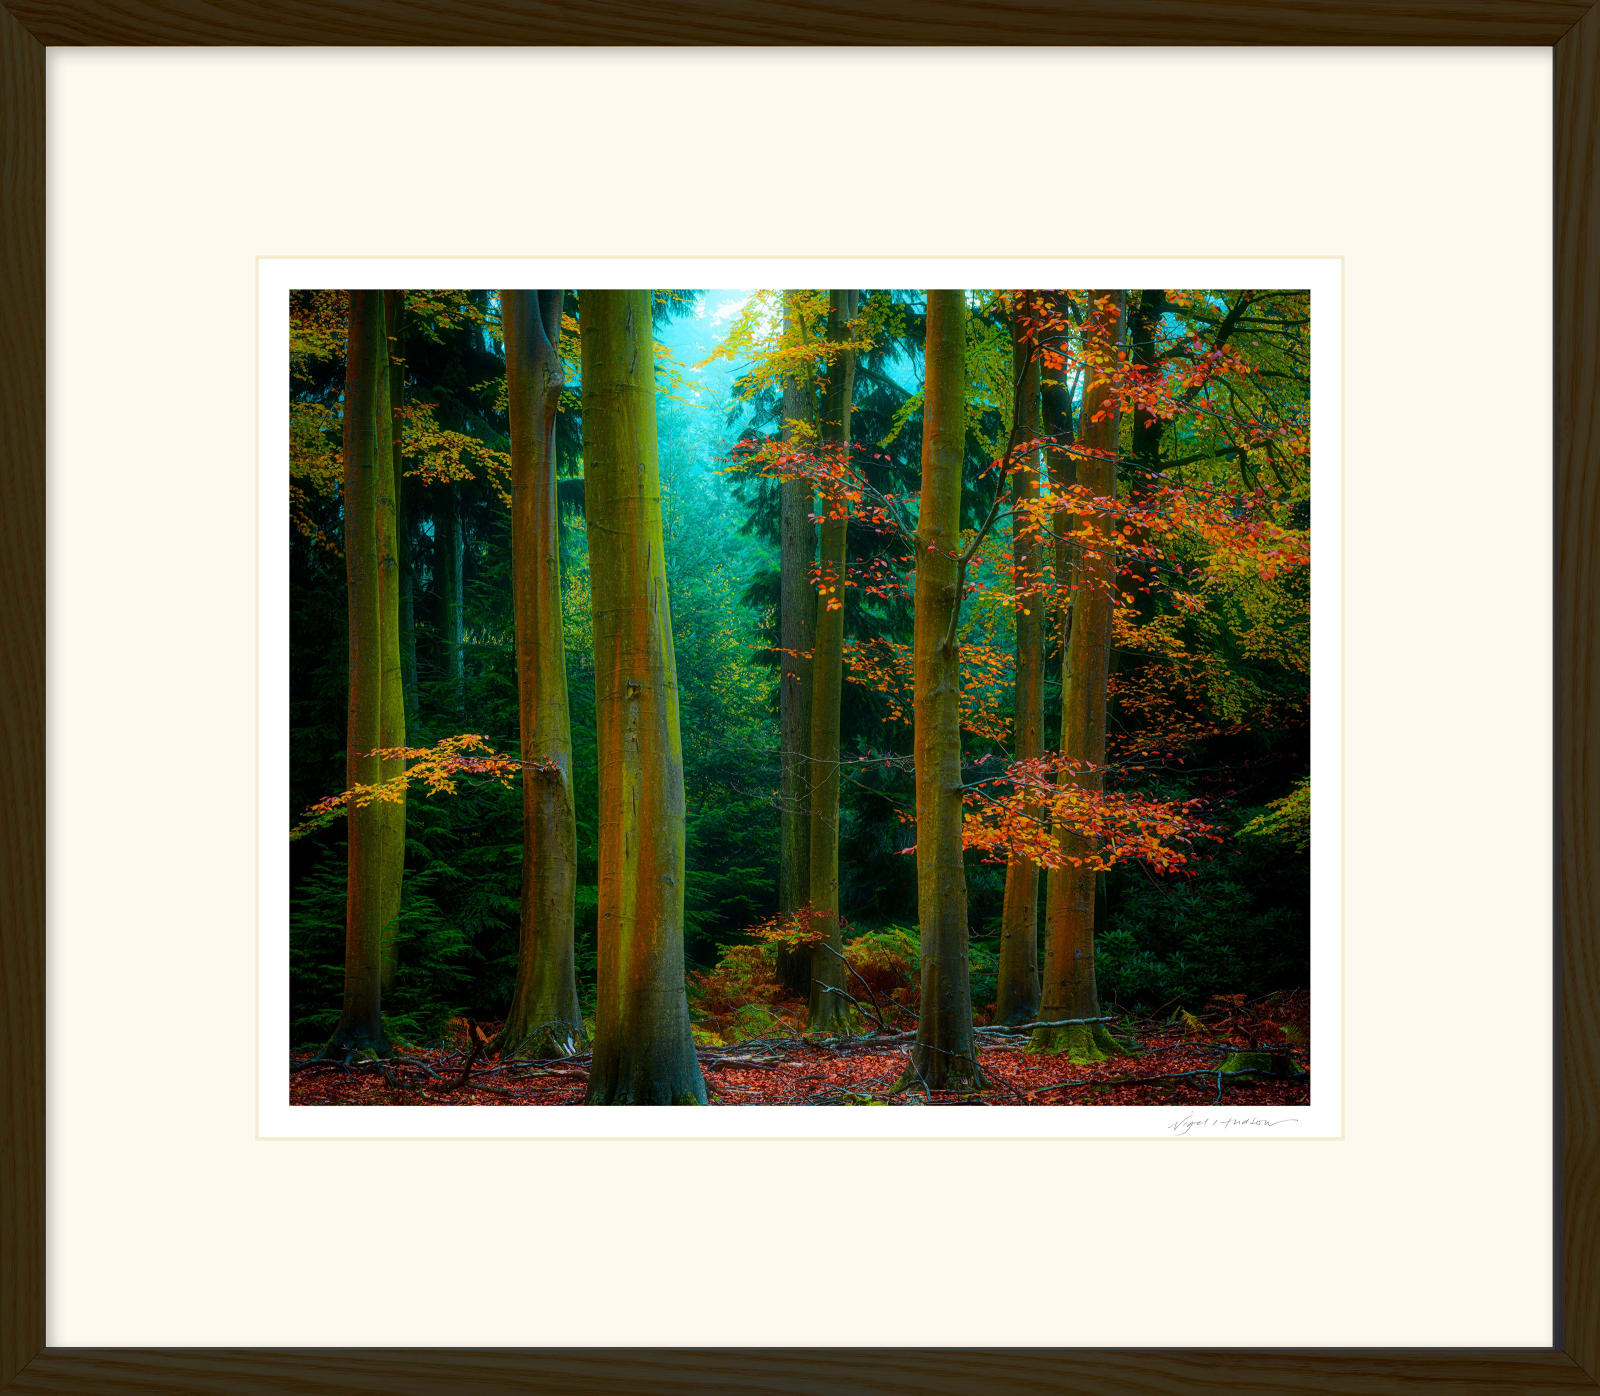 'AUTUMN COLOUR SPLASH' Archival Pigment Print on Platinum Etching Fine Art Paper. Framed in an Oiled Walnut Cushion Frame and protected with crystal clear Water White Glass. Available in an edition of 3 in three sizes. Prices from £245.00 including first class courier delivery within five working days.